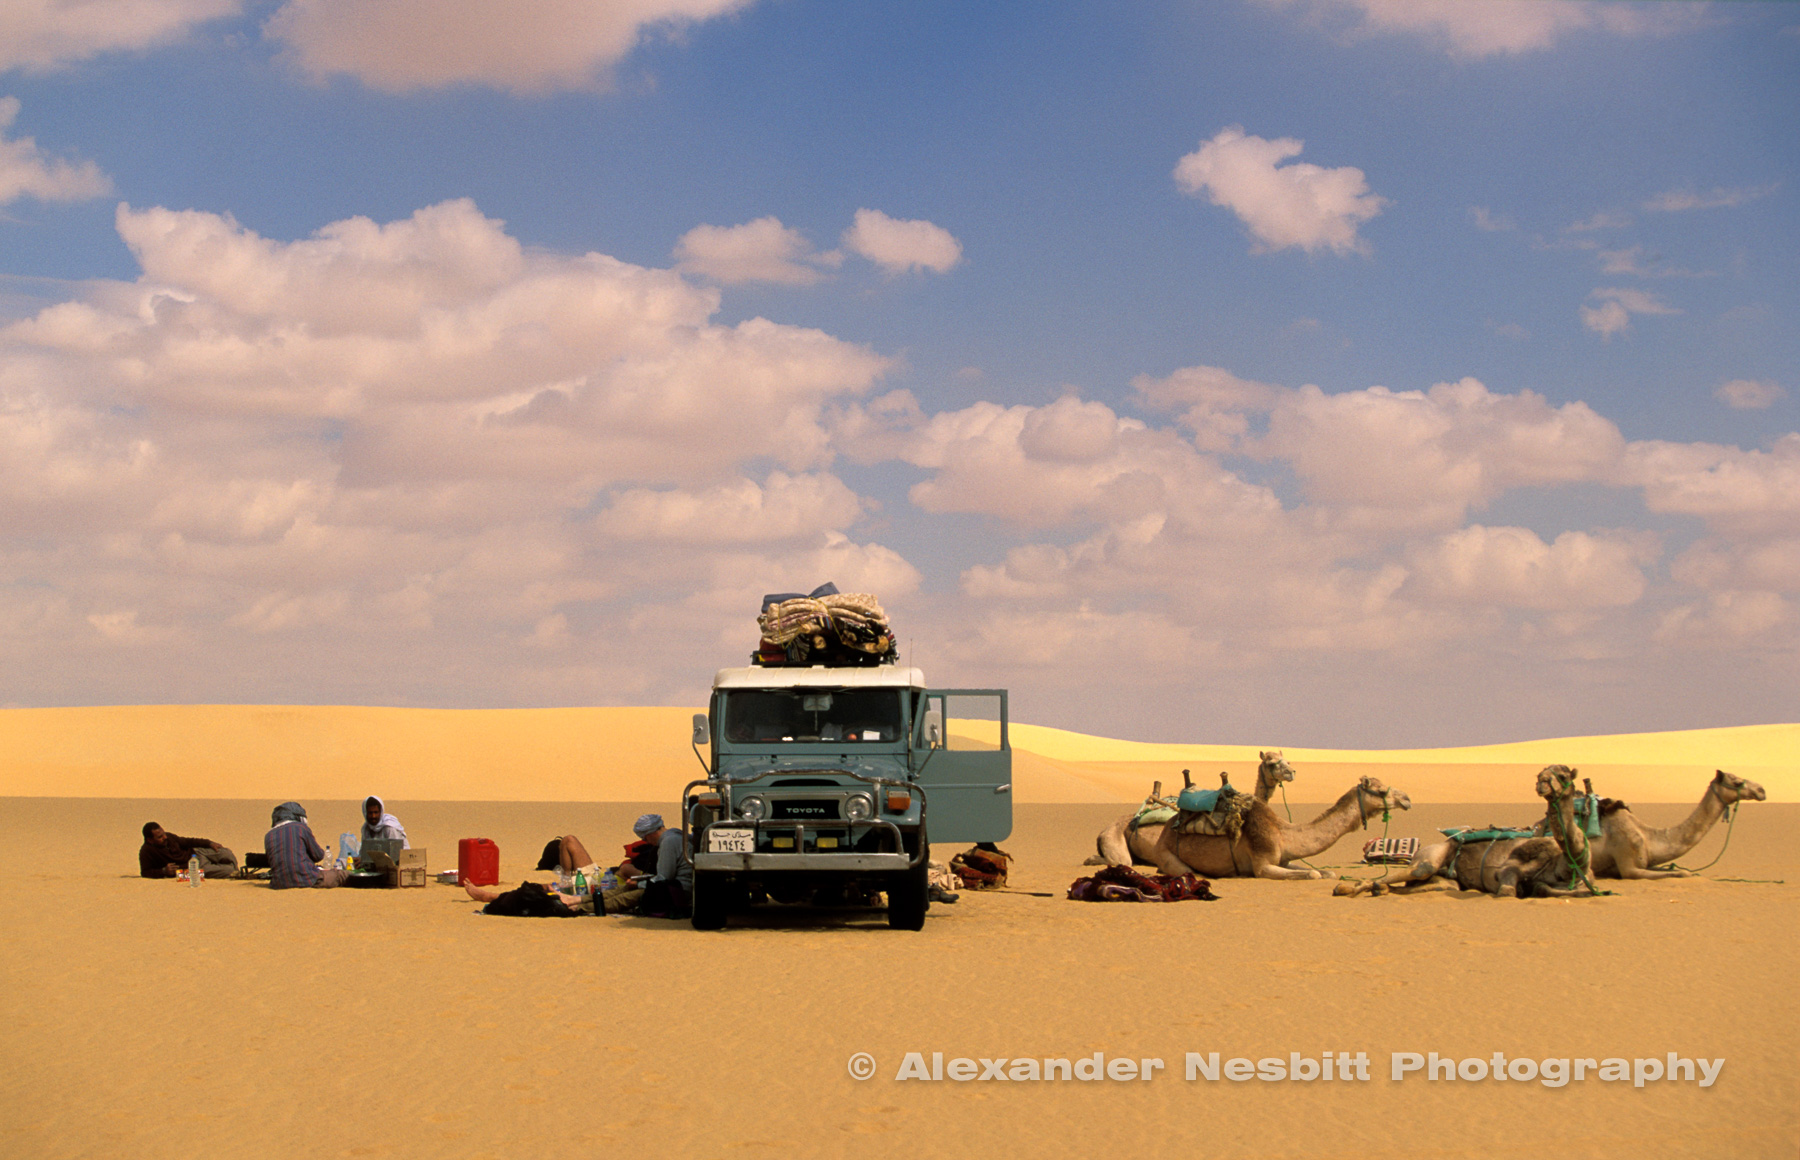 Egyptian western desert.  Lunch Time rendezvous with the supply vehicle, an old FJ40 Landcruiser, midway through a Camel trek  across the sand sea desert between Farafra and Dakhla Oasis